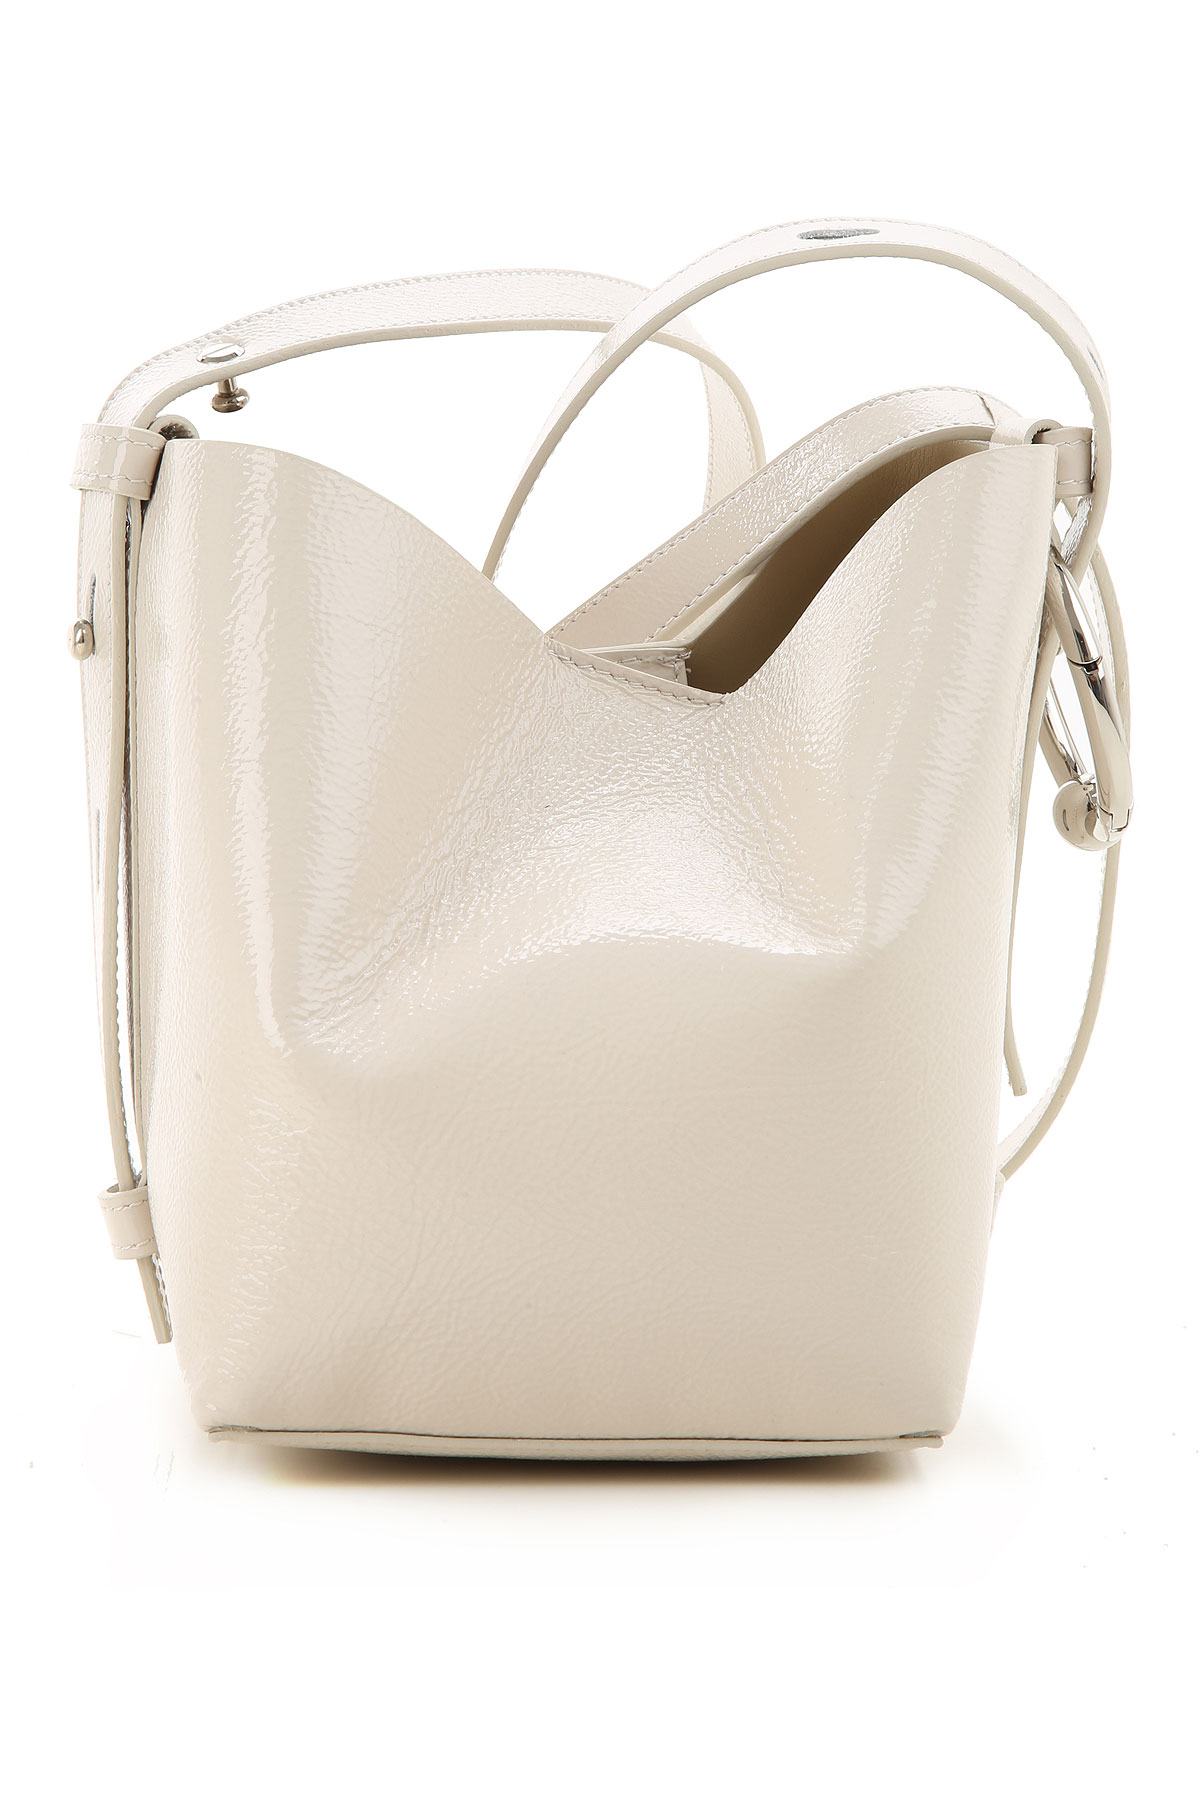 Rebecca Minkoff Shoulder Bag for Women On Sale, Clay, Patent Leather, 2019